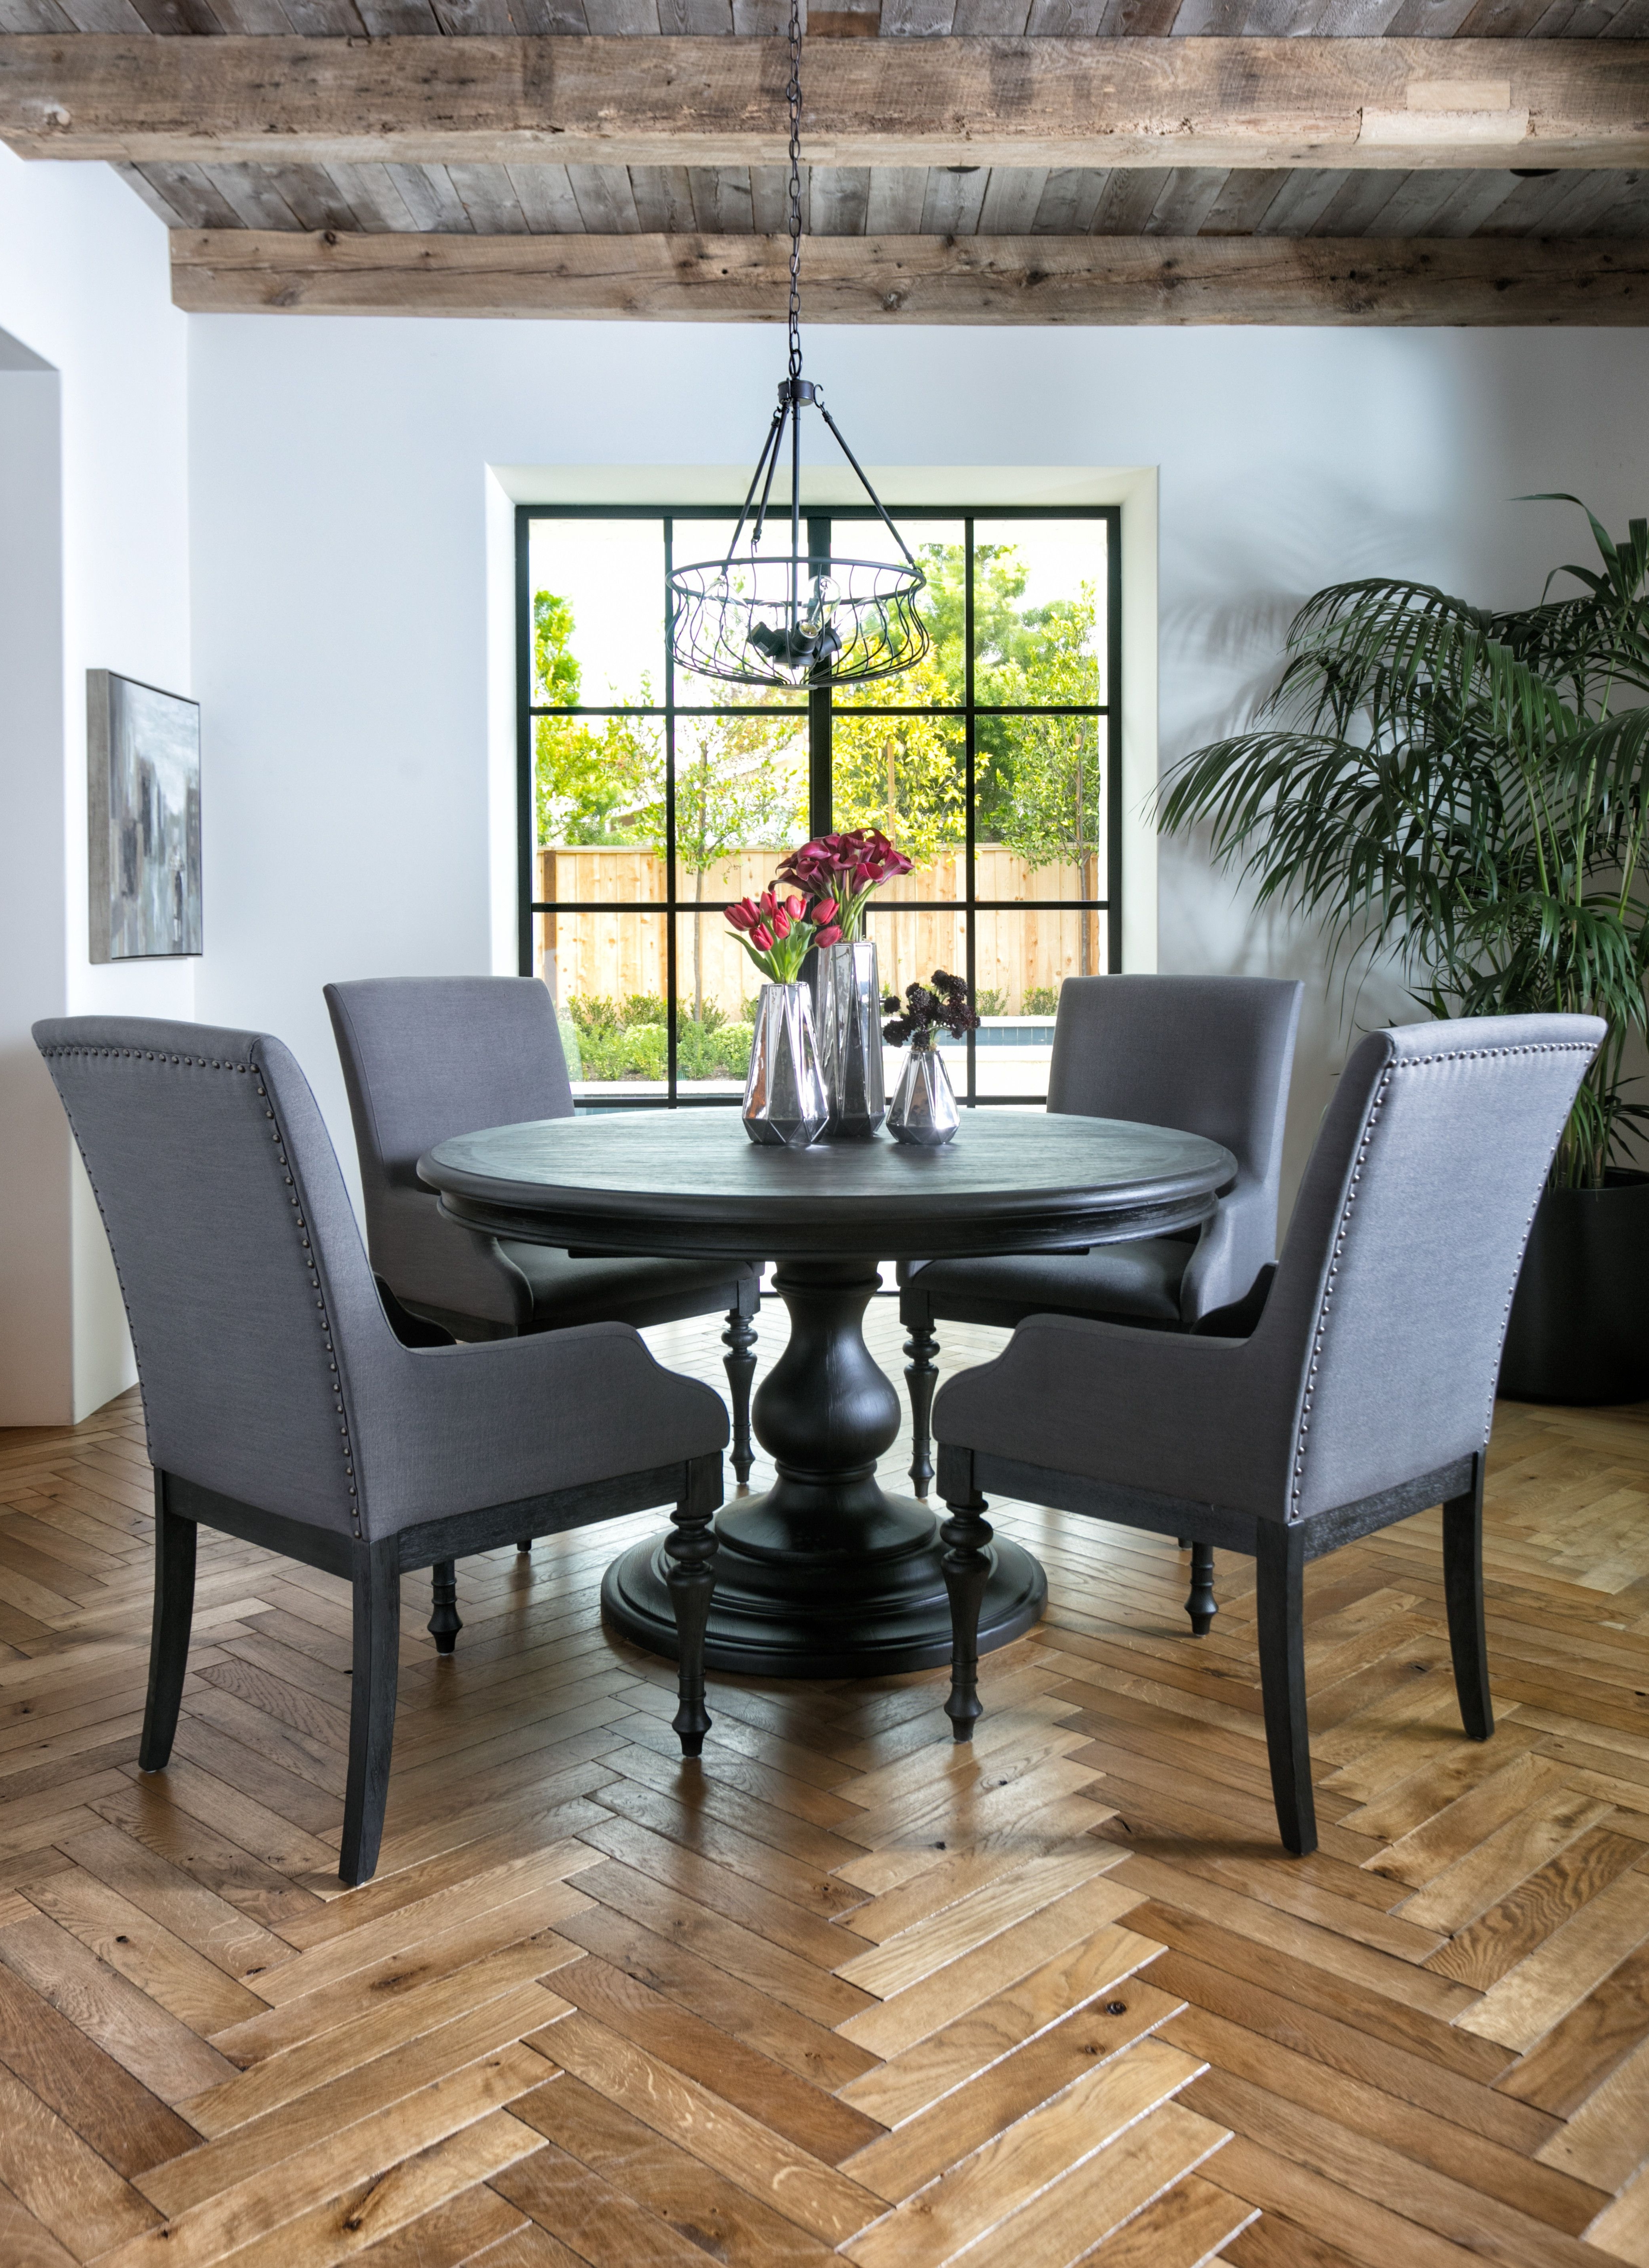 Caira Black 5 Piece Round Dining Set With Diamond Back Side Chairs With 2018 Caira 7 Piece Rectangular Dining Sets With Diamond Back Side Chairs (View 3 of 25)